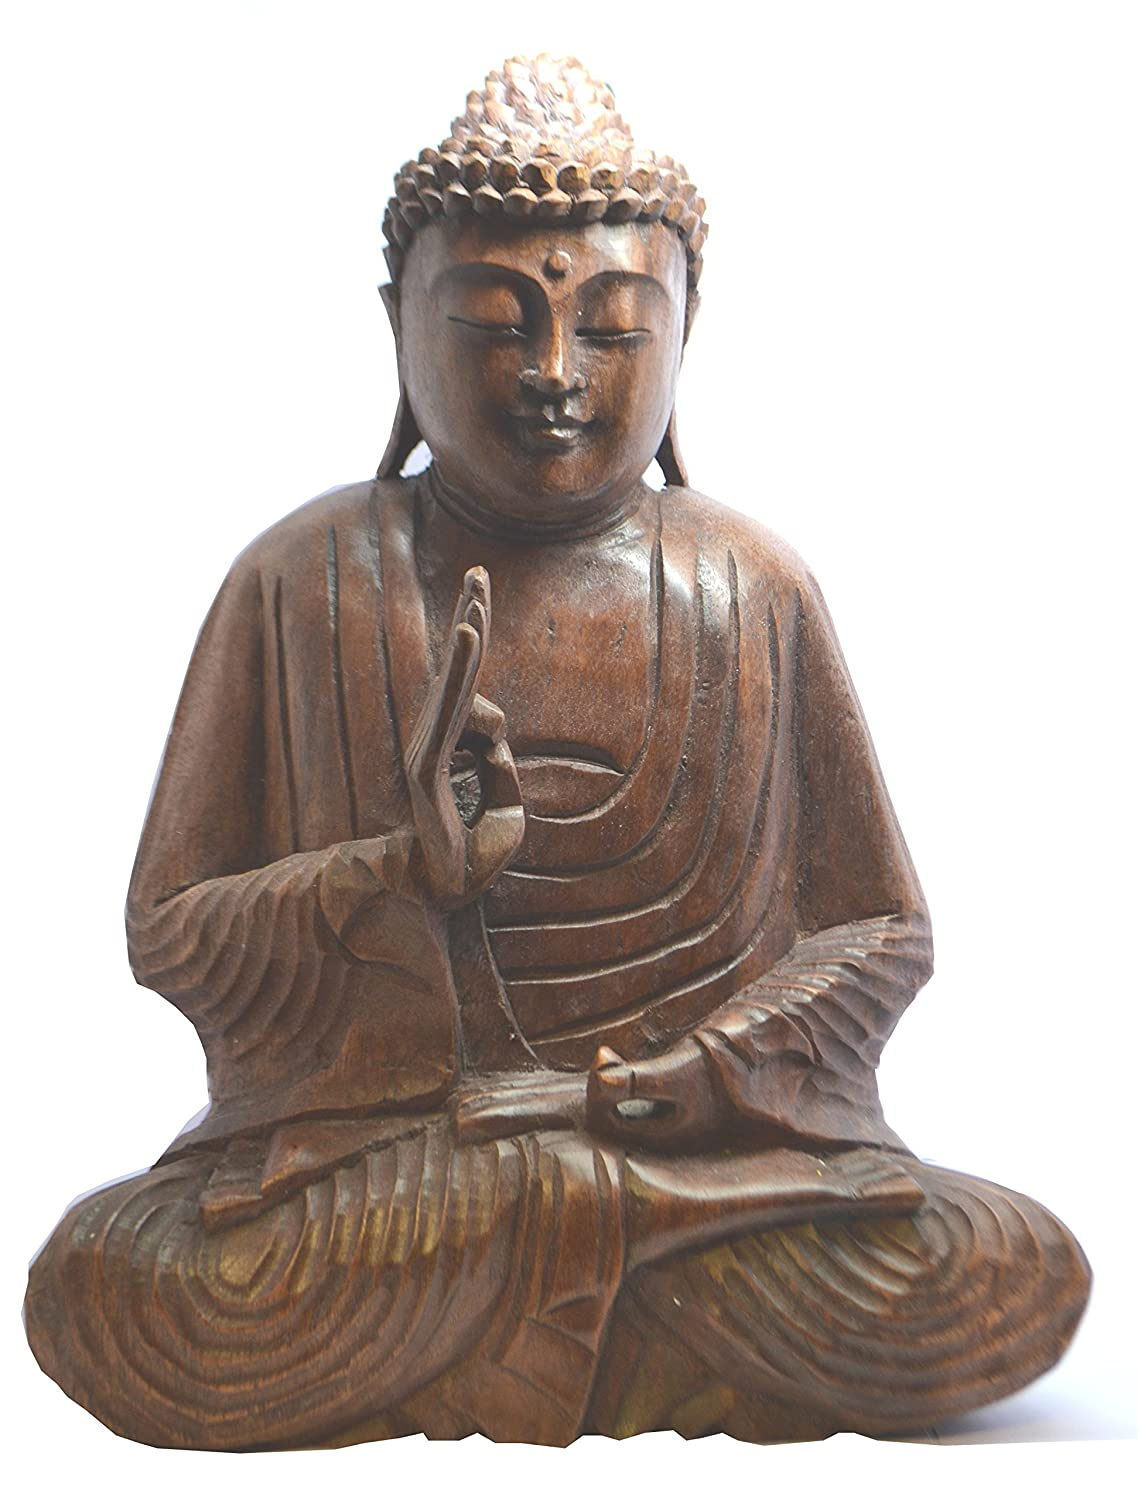 Brown 10 x 25 x 30 cm Wood Mystery Mountain Fair Trade Wooden Hand Carved Seated Meditation Buddha Statue